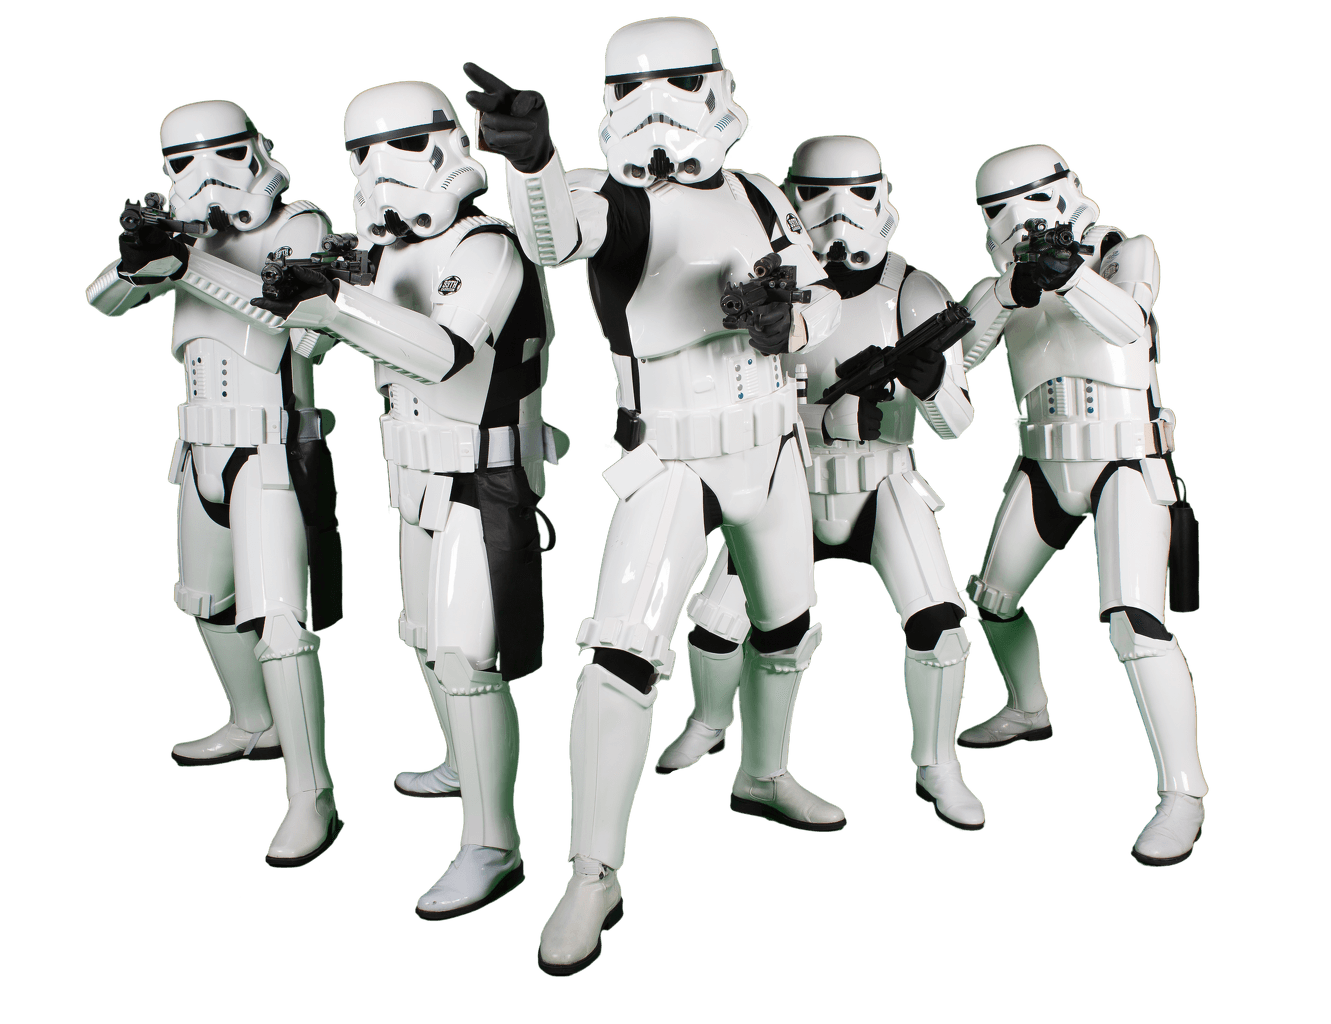 Star Troopers Star Wars - Star Wars PNG